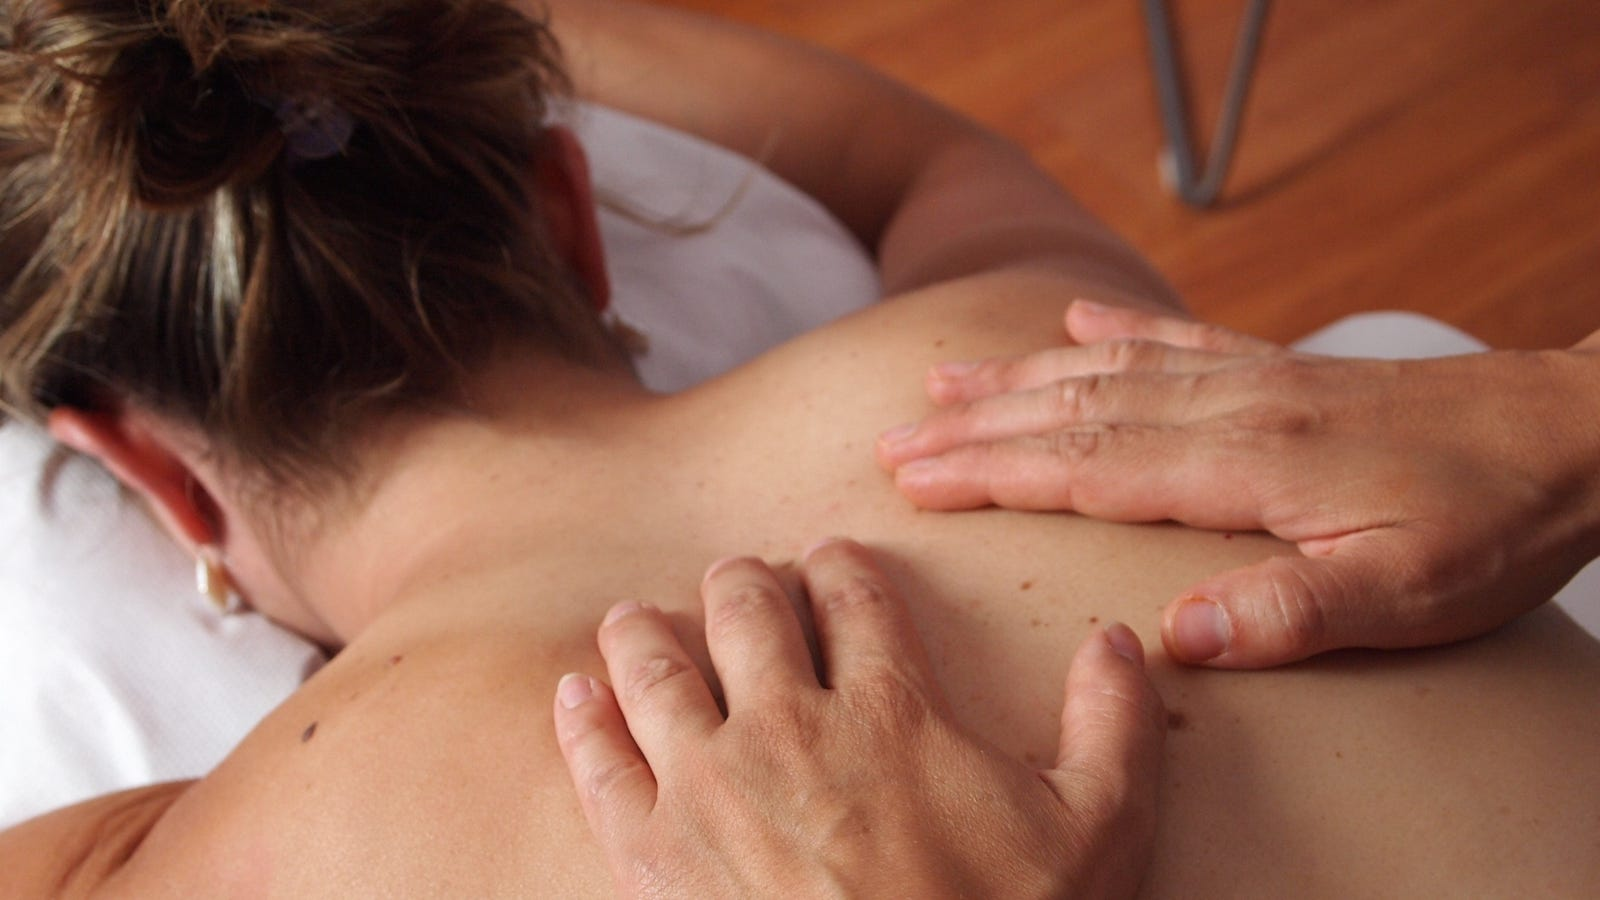 How To Know When A Massage Turns Inappropriate-3625